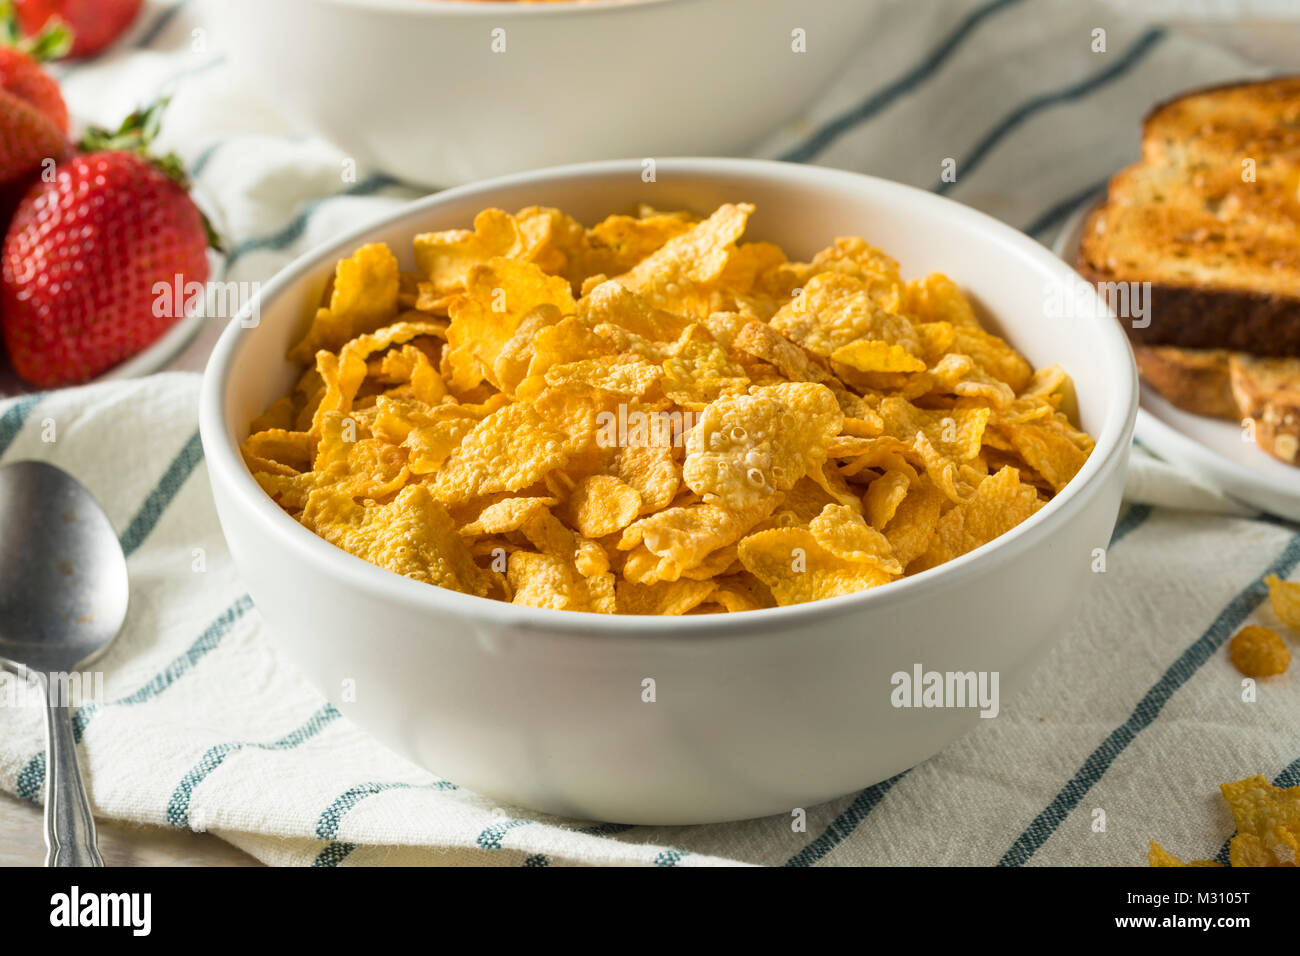 Healthy Corn Flakes with Milk for Breakfast with Fruit - Stock Image